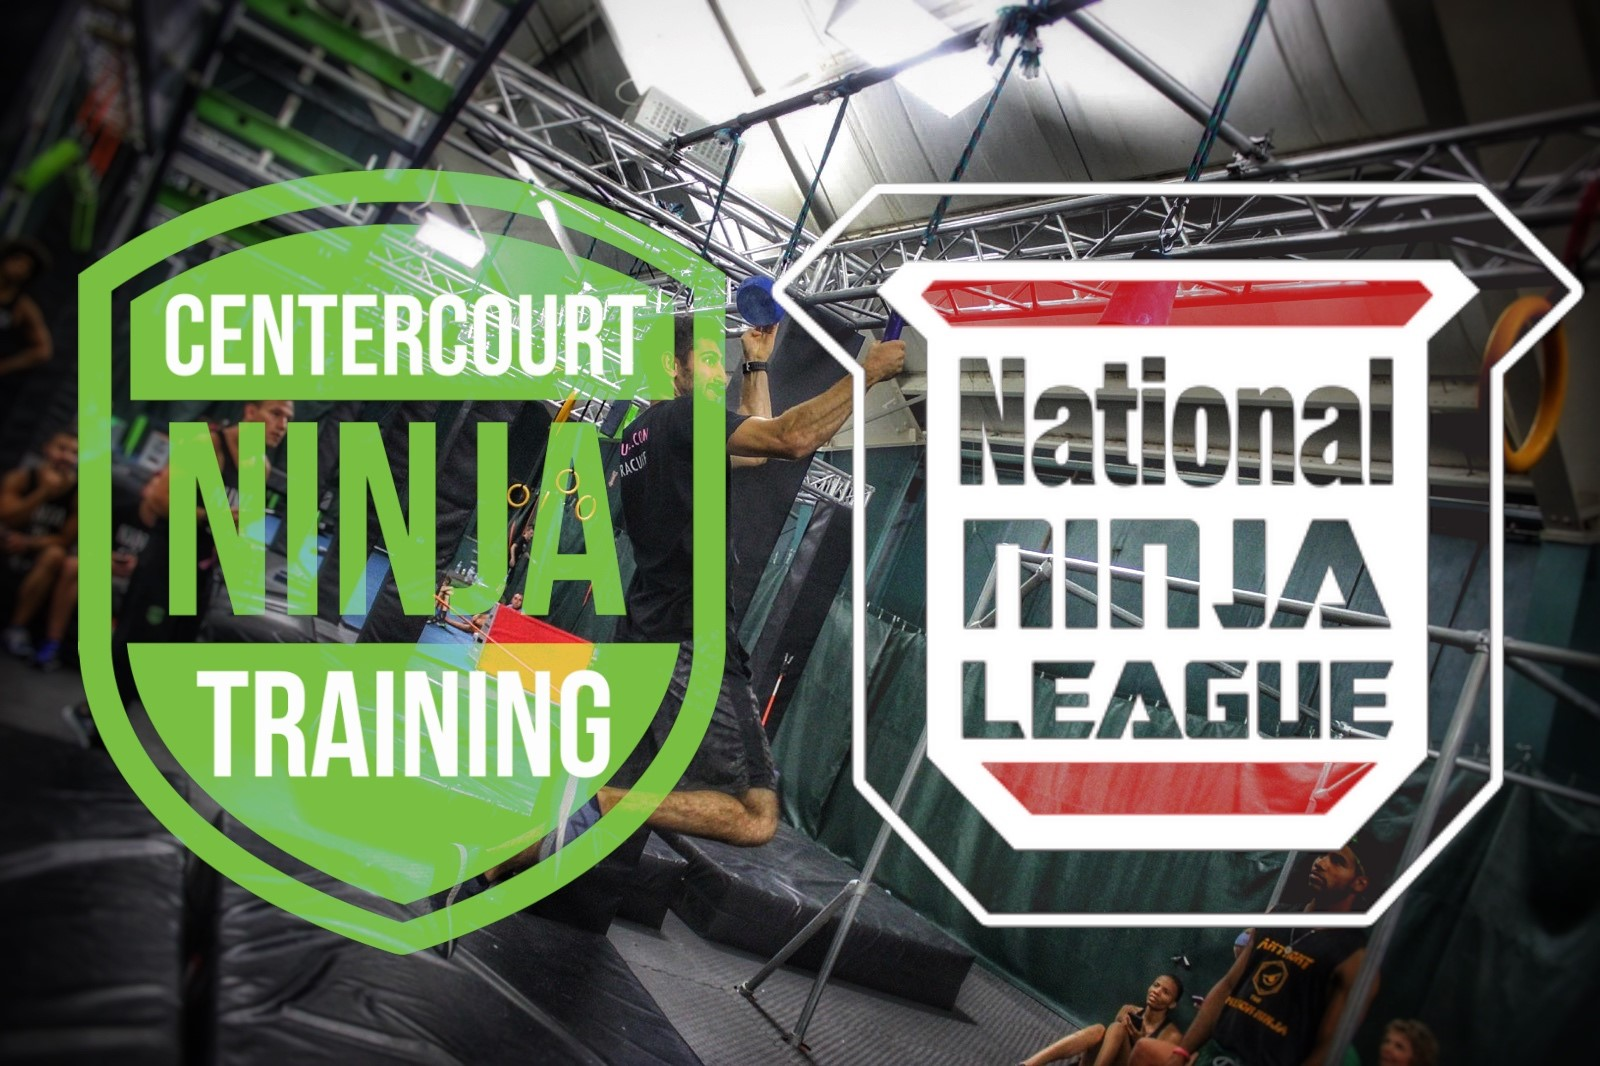 National Ninja League Competition